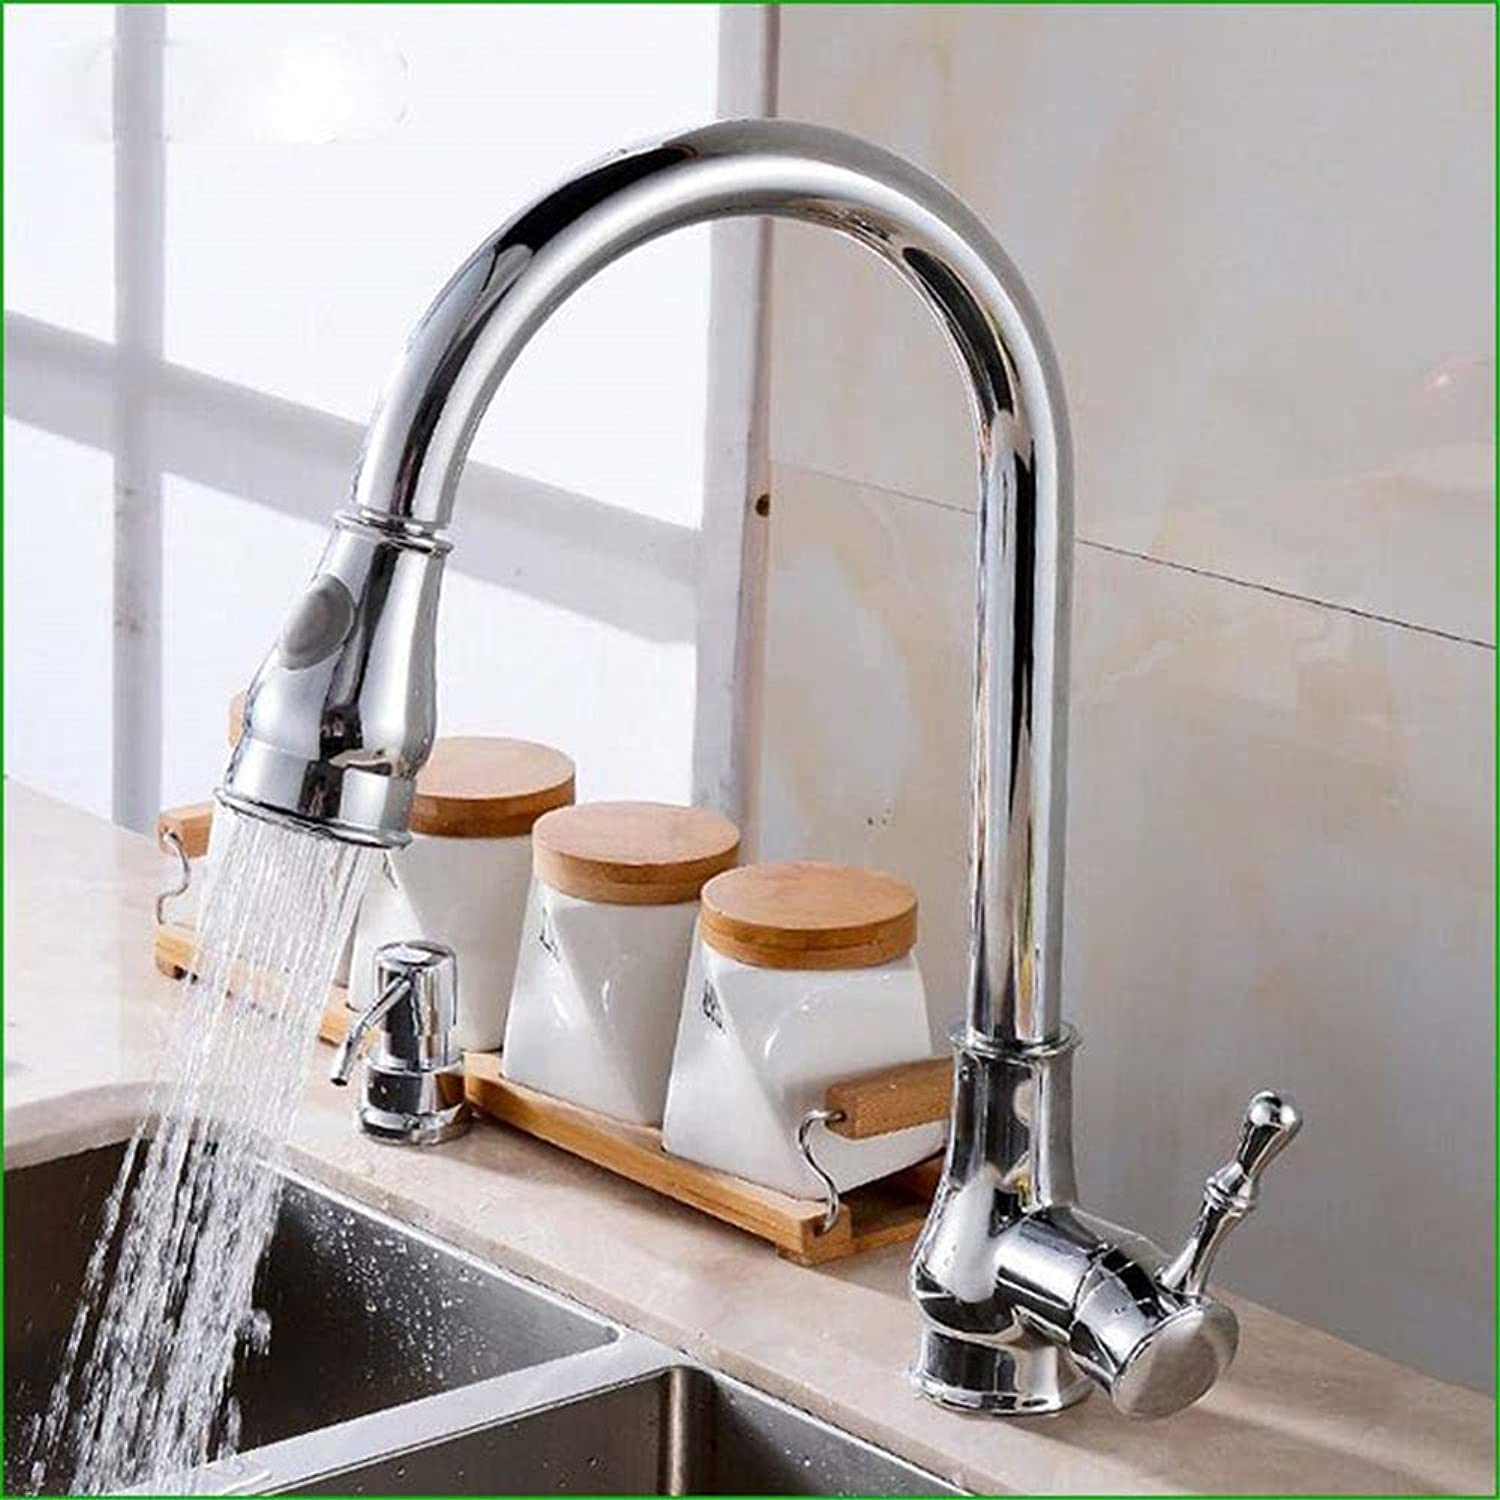 Gyps Faucet Basin Mixer Tap Waterfall Faucet Antique Bathroom The Kitchen hot and cold-water faucet dish pools to redate the dish basin faucets Mixer Taps Bathroom Tub Lever Faucet